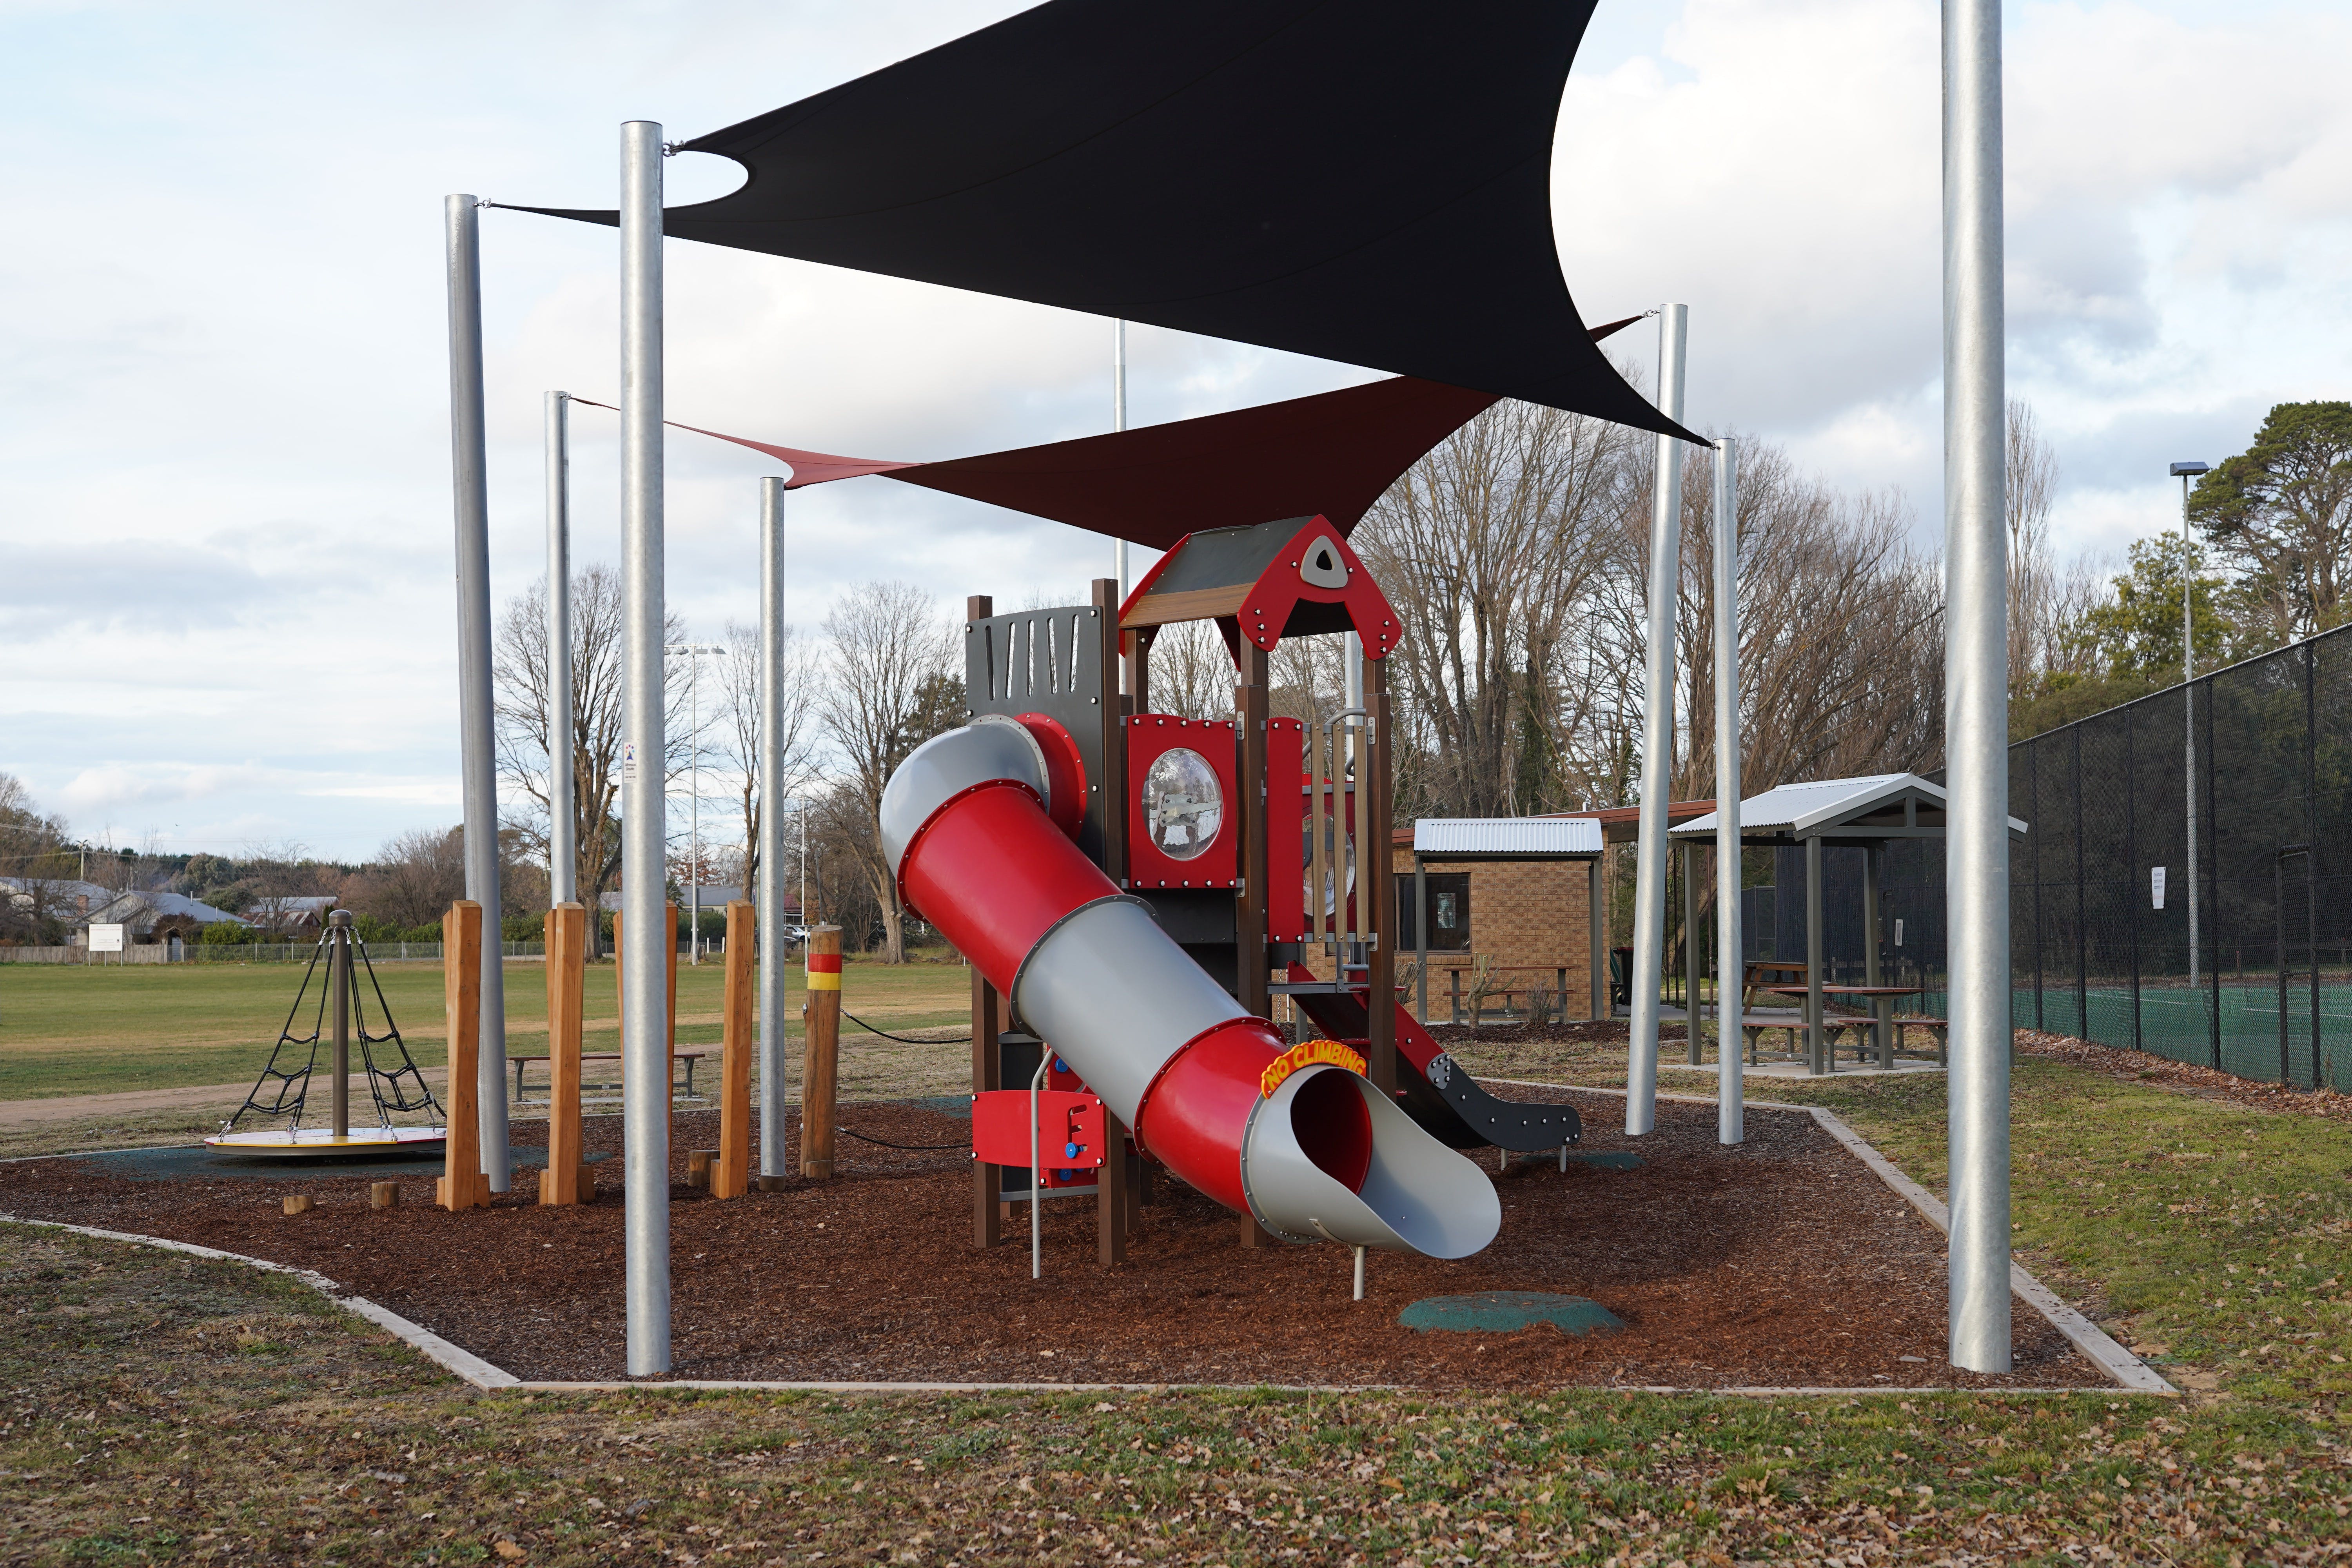 Braidwood Recreation Grounds and Playground - Accommodation Perth